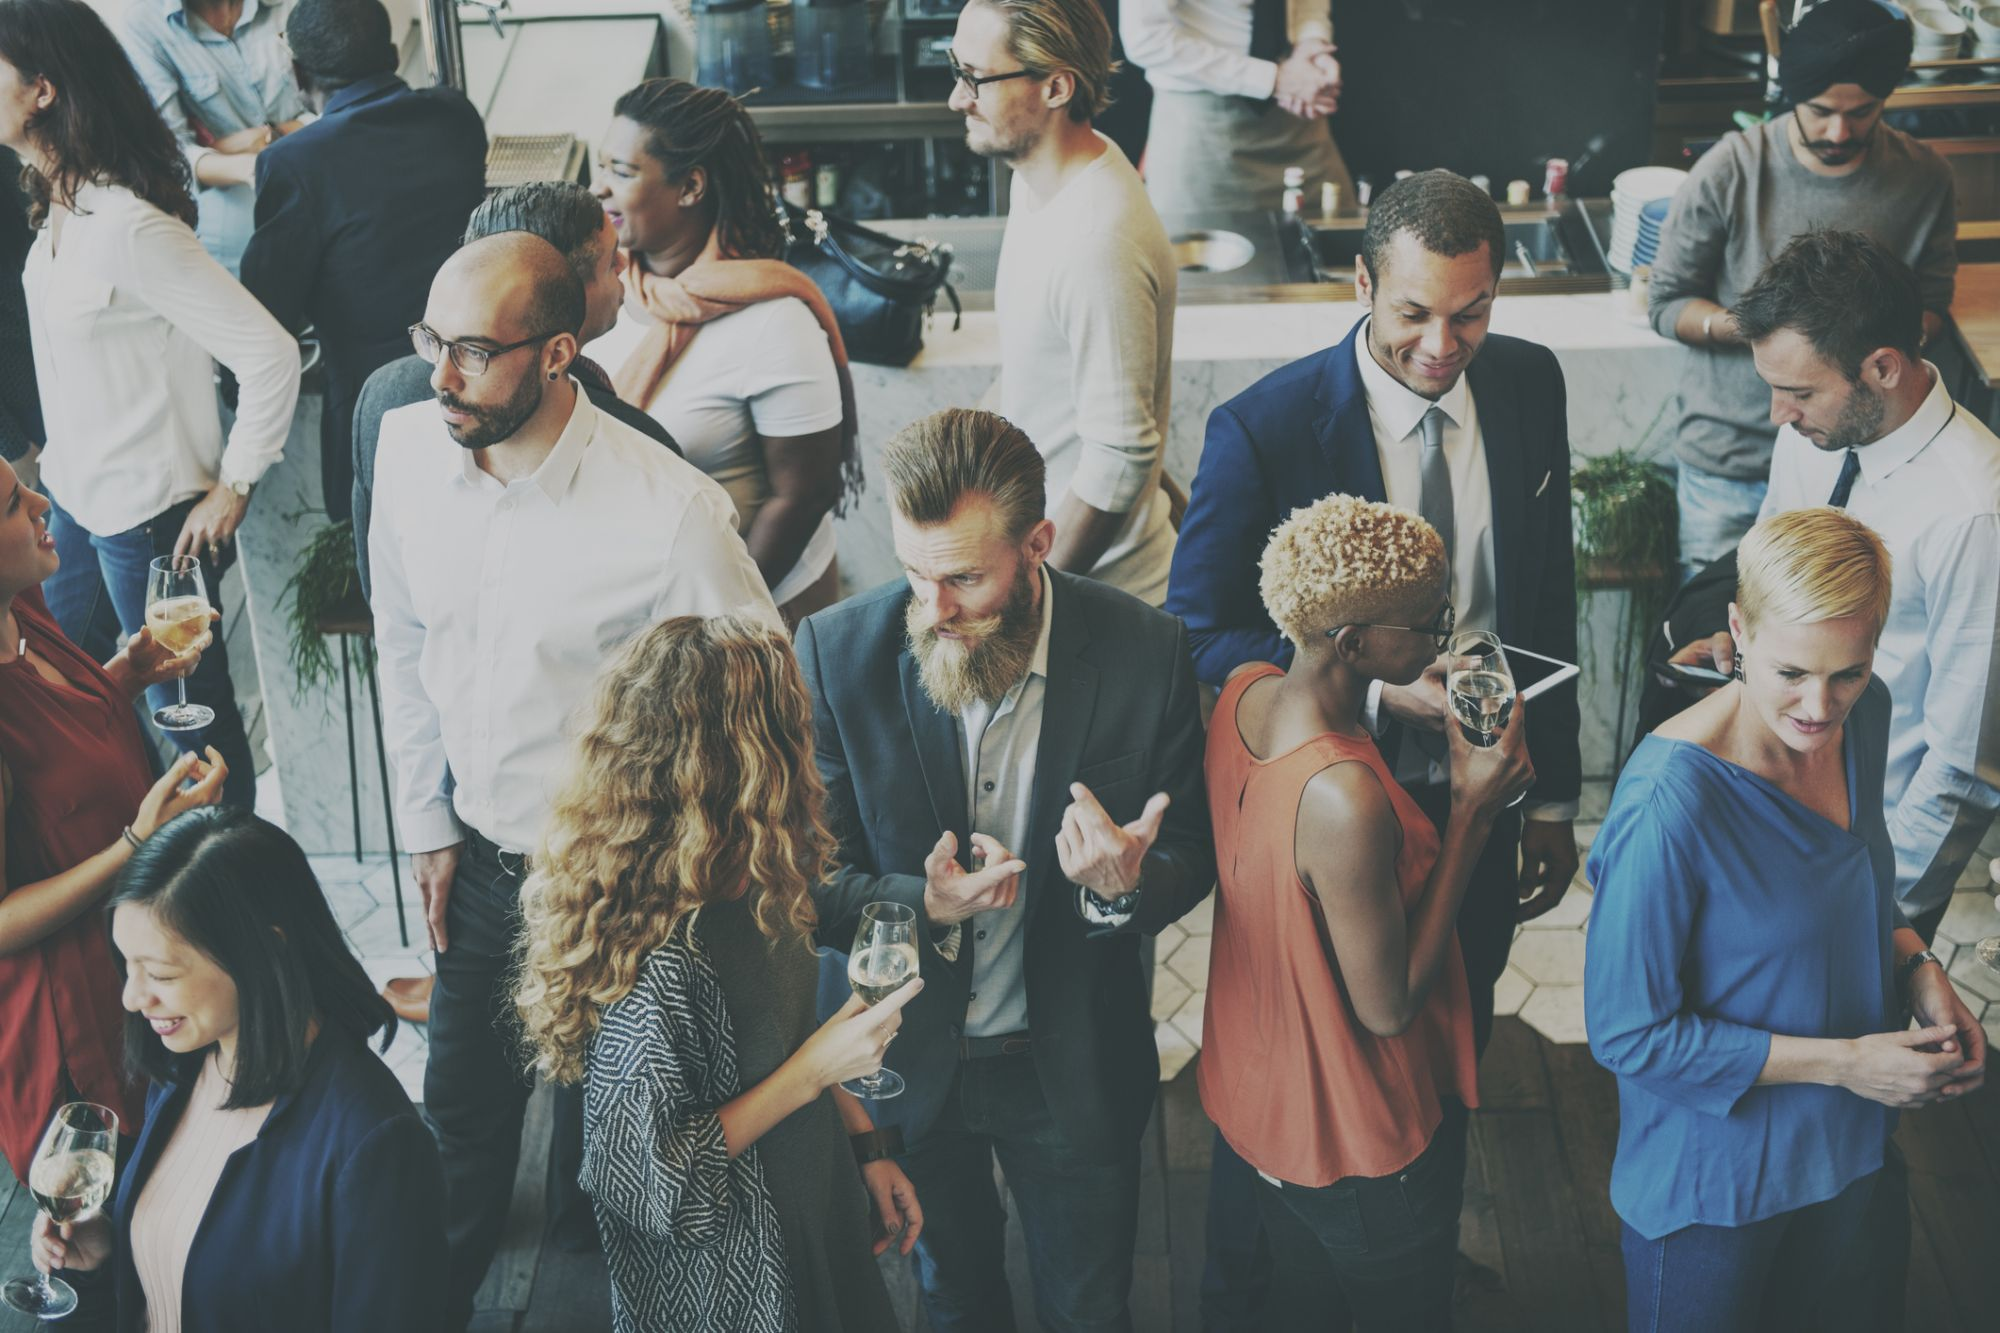 5 Networking Tips for Small Business Owners (to Make it Suck Less) | EP Wealth